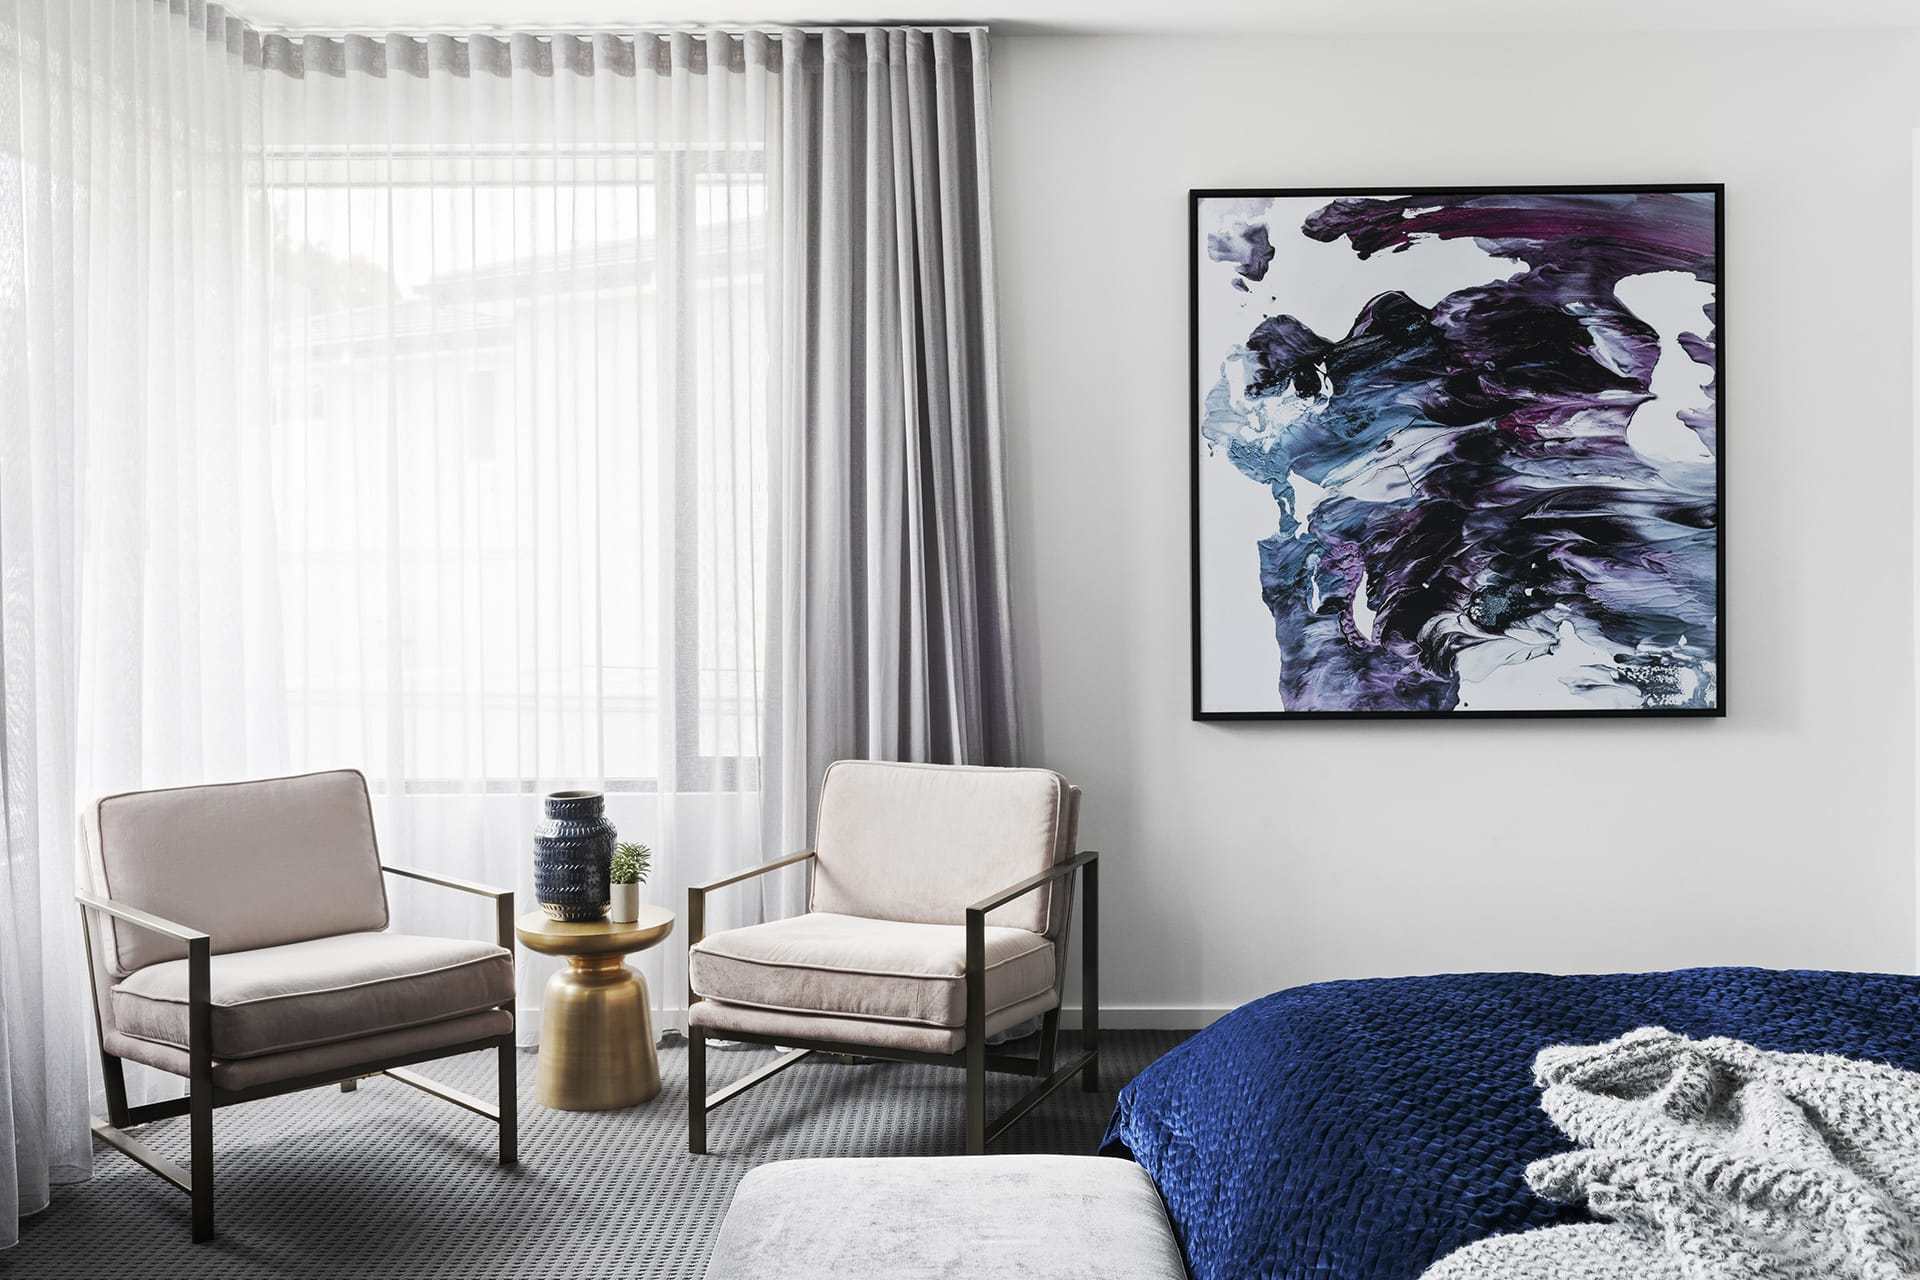 west elm pink velvet armchairs with bronze side table and large abstract artwork in master bedroom